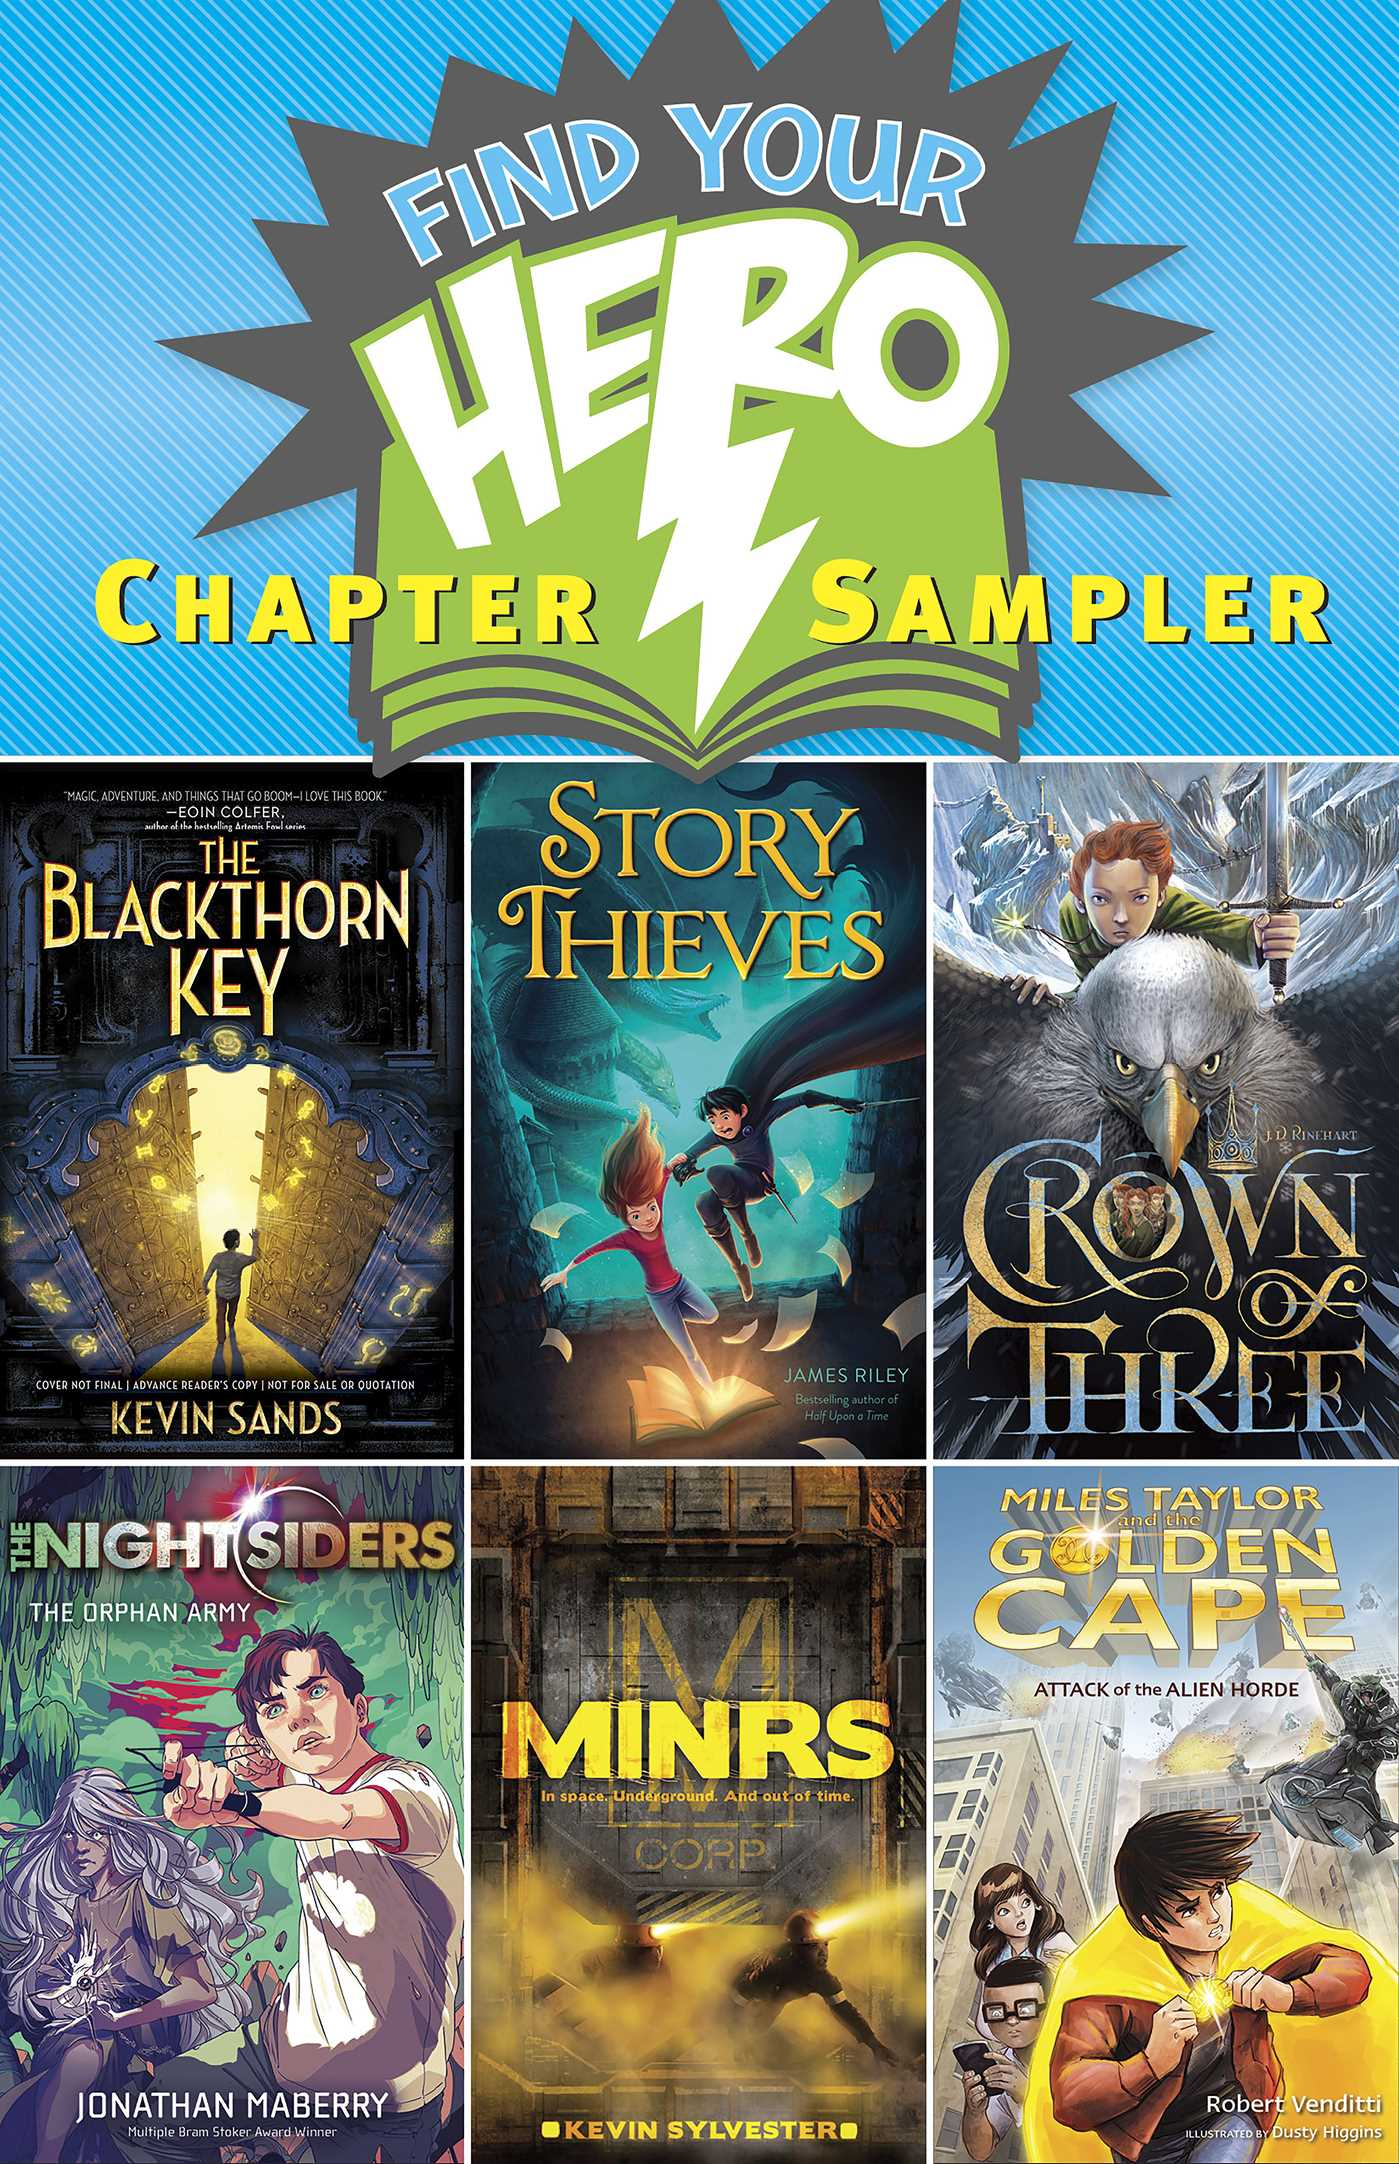 Find your hero chapter sampler 9781481467407 hr